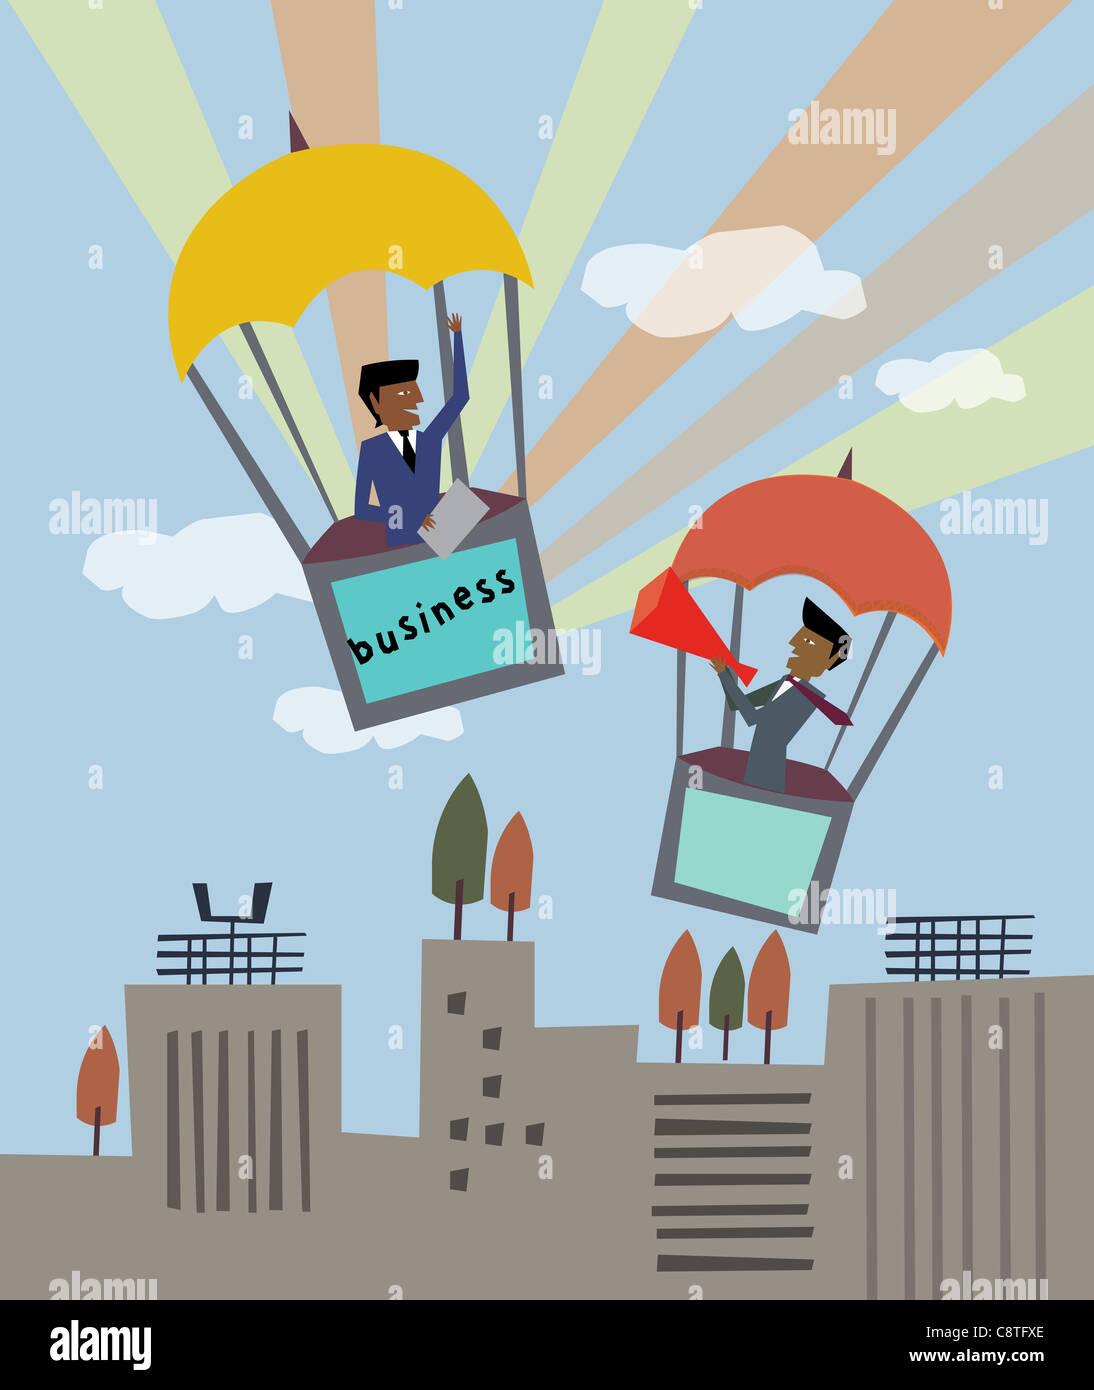 Businessmen In Hot Air Balloon - Stock Image